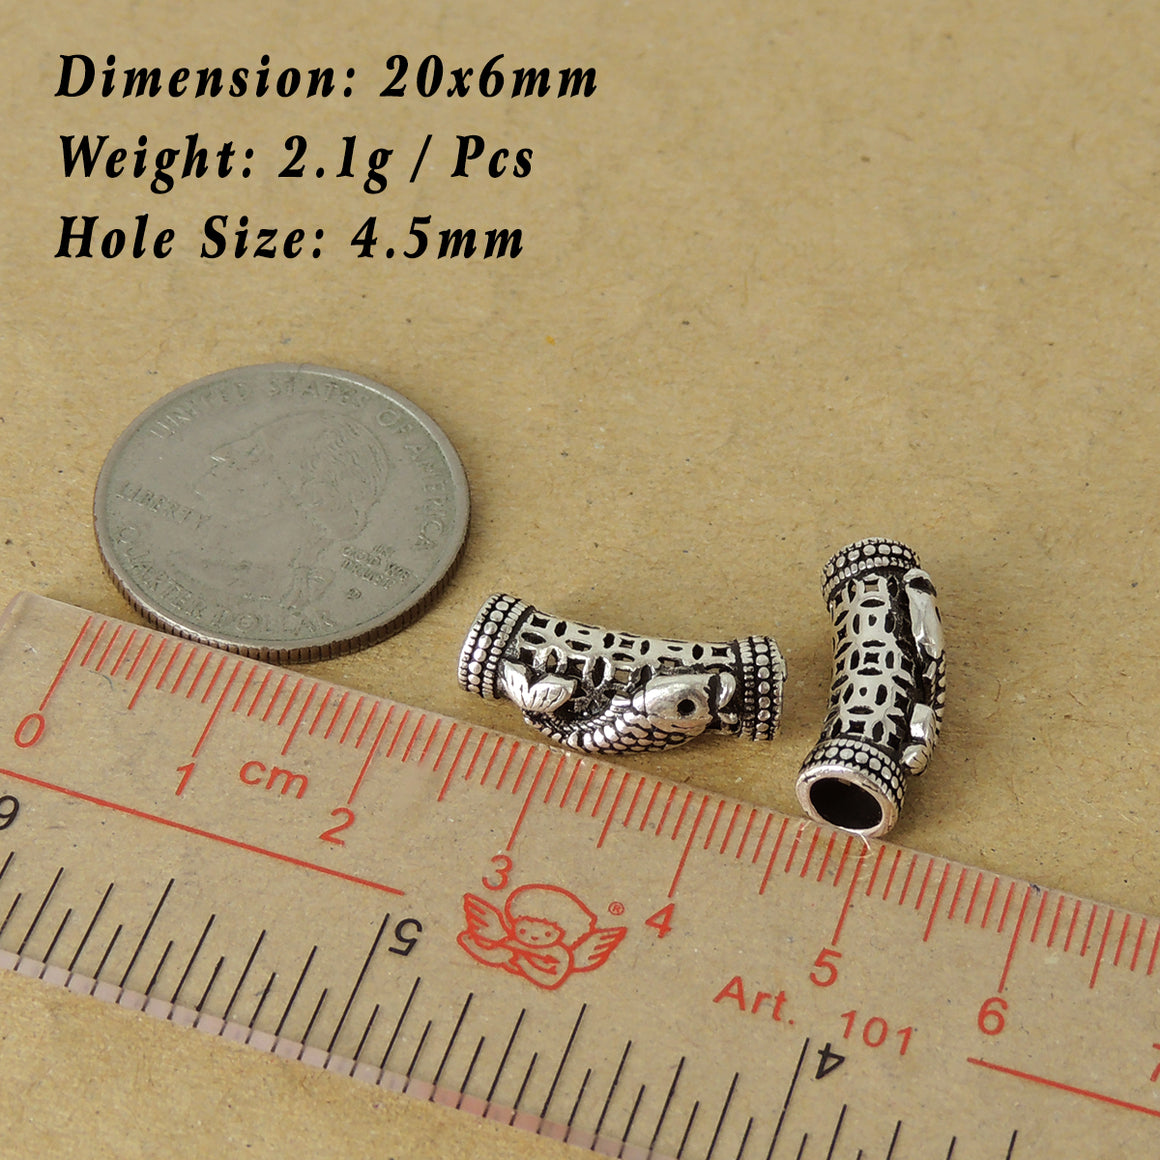 Custom Design Genuine Non-plated 925 Sterling Silver - Japanese Koi Fish Charm for DIY Jewelry Making WSP566X1